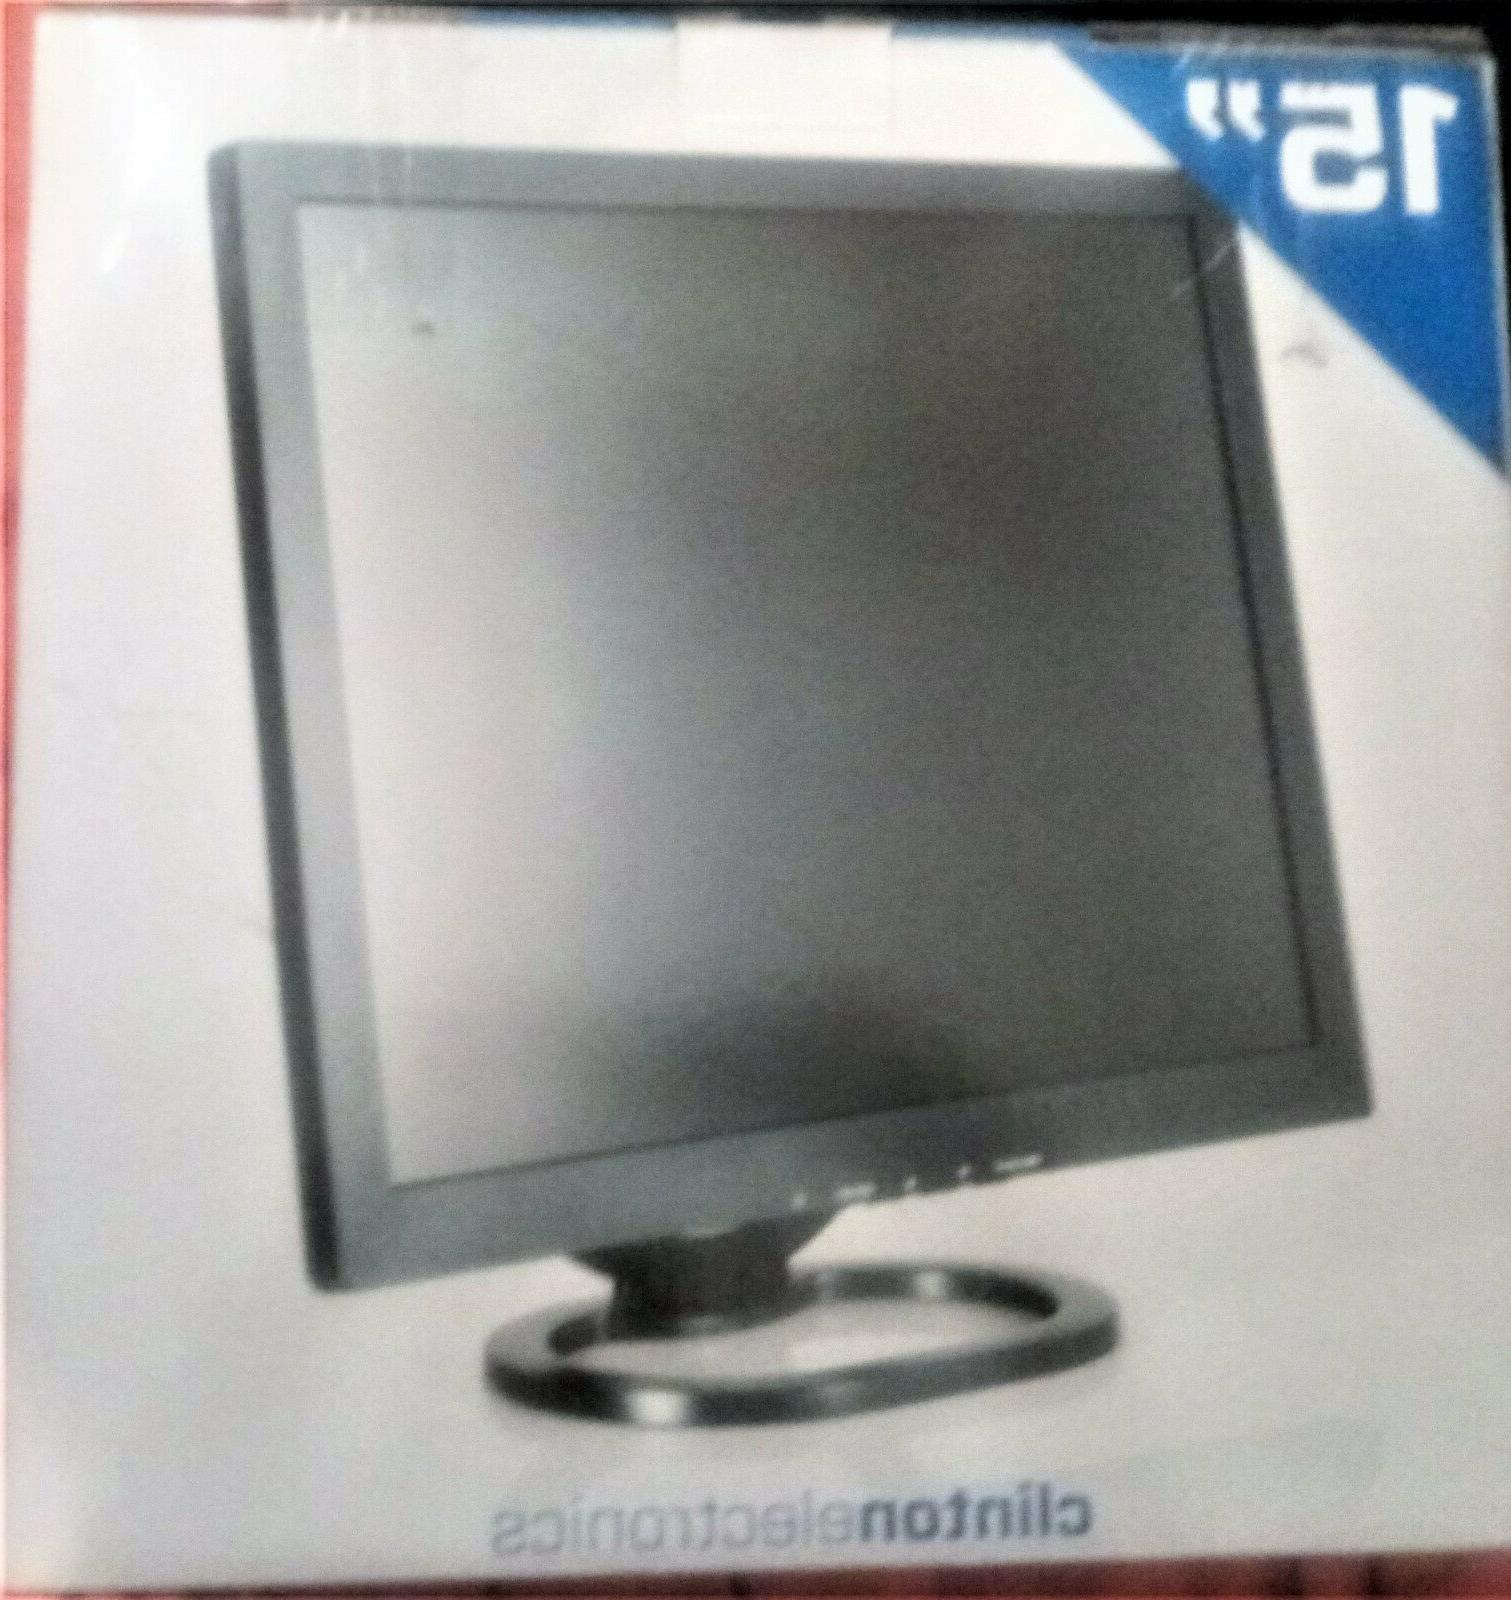 15in electronics monitor vt 568